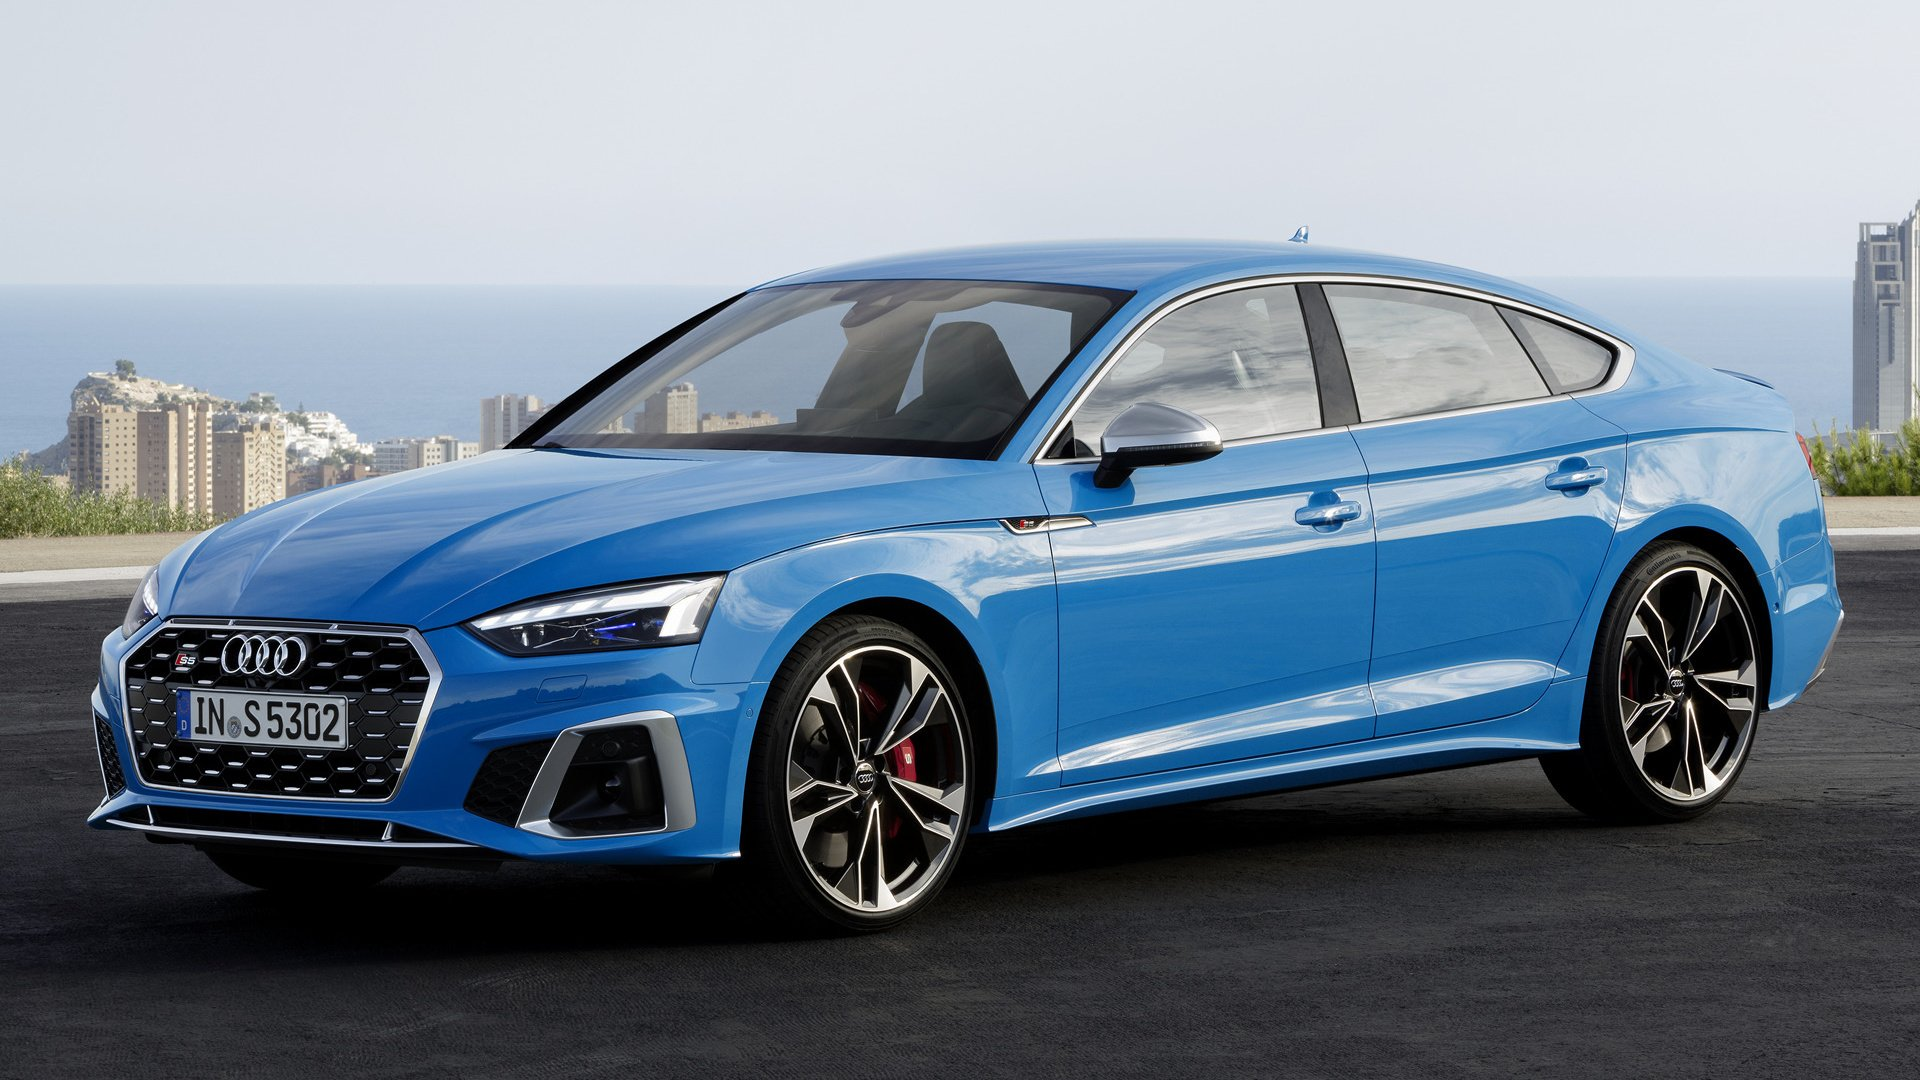 2020 audi s5 sportback hd wallpaper  background image